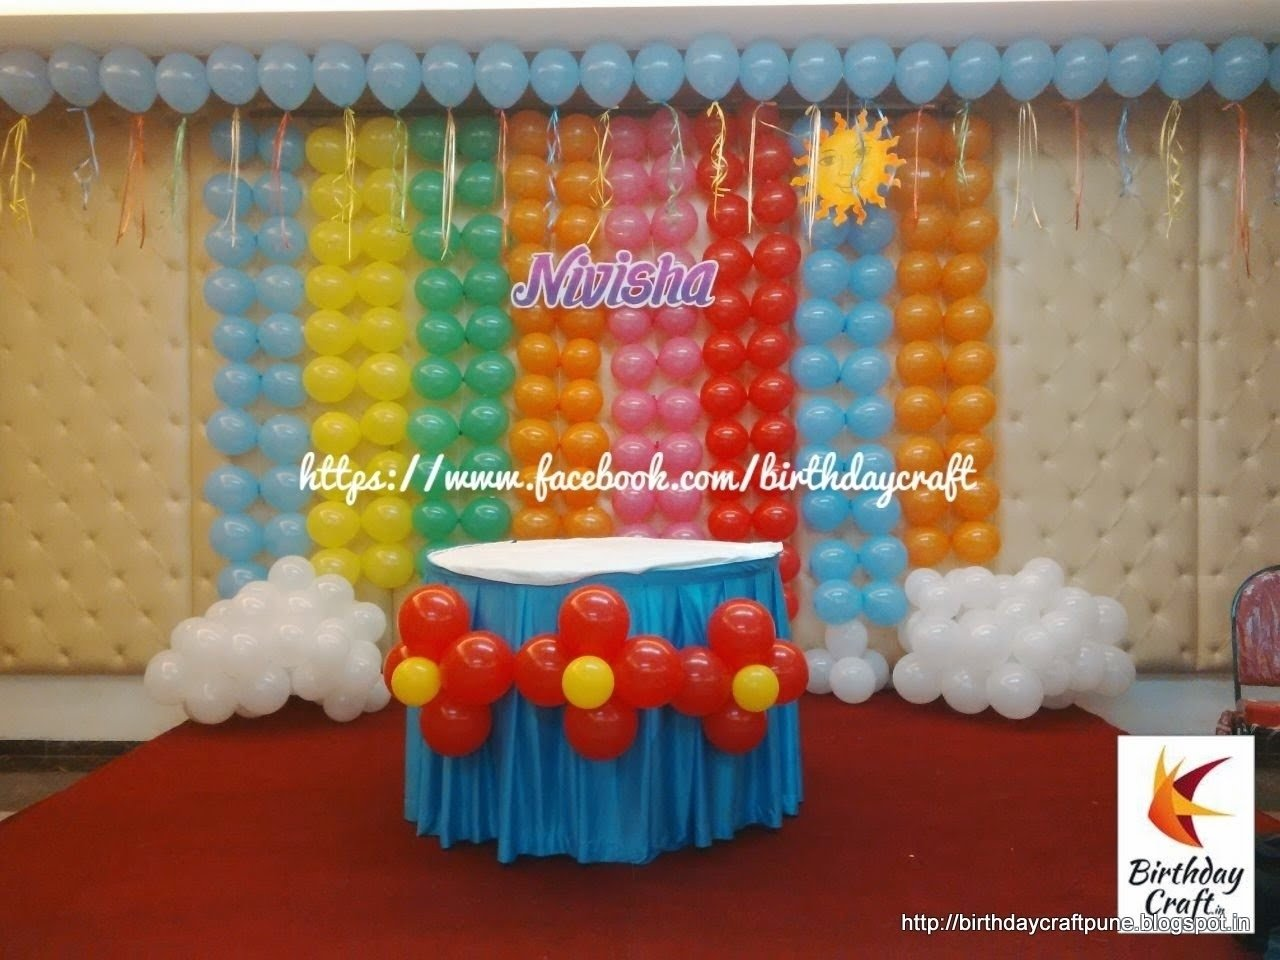 10 Unique Birthday Party At Home Ideas birthday parties kids party decorations home tierra este 59851 3 2020